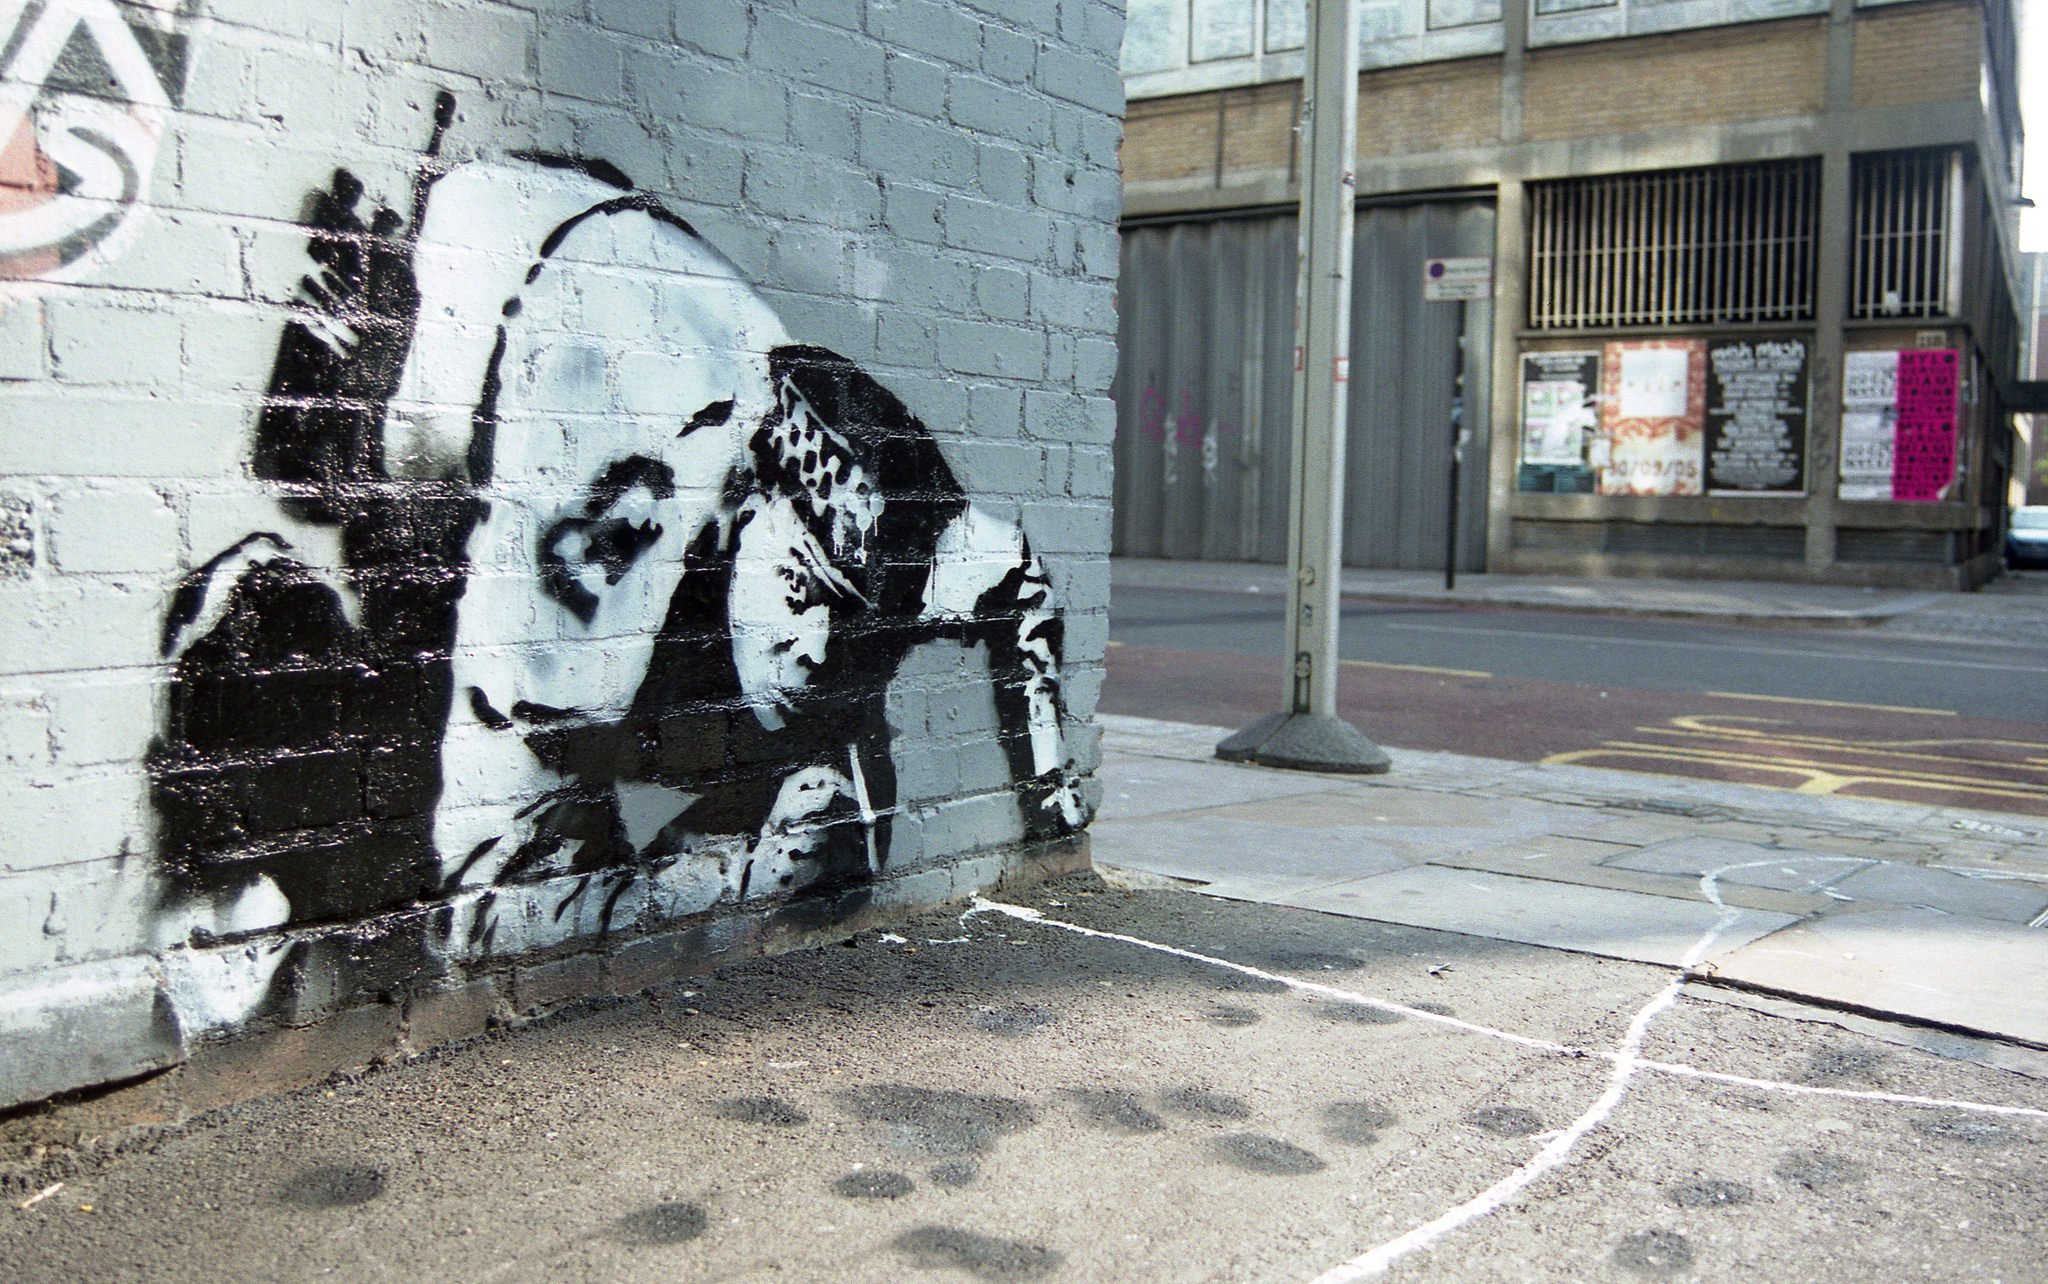 Re-discovered Snorting Copper Banksy will be displayed in east London again